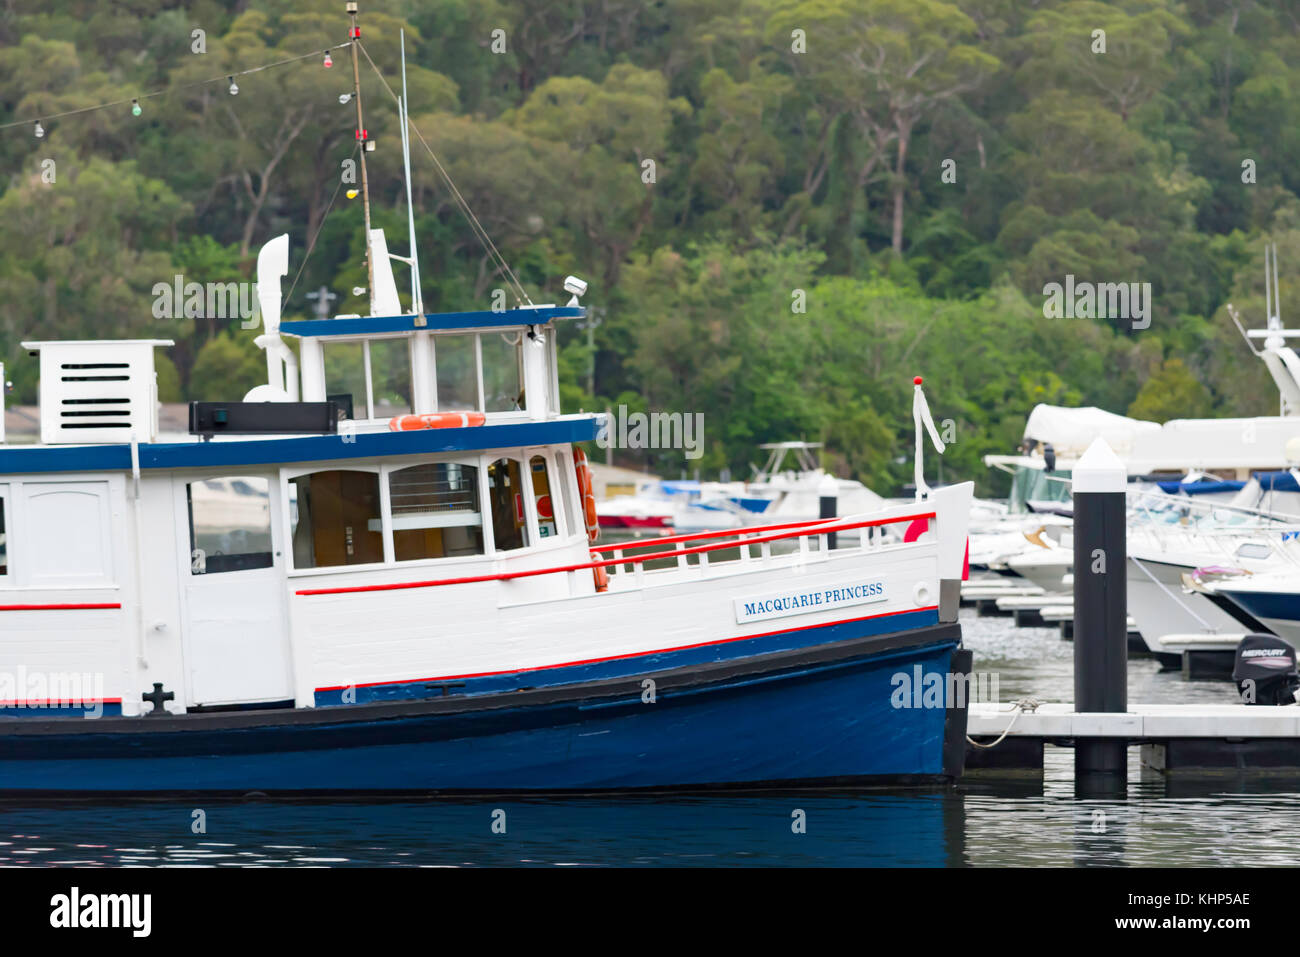 A historic wooden ferry moored at Berowra Waters in Sydney - Stock Image